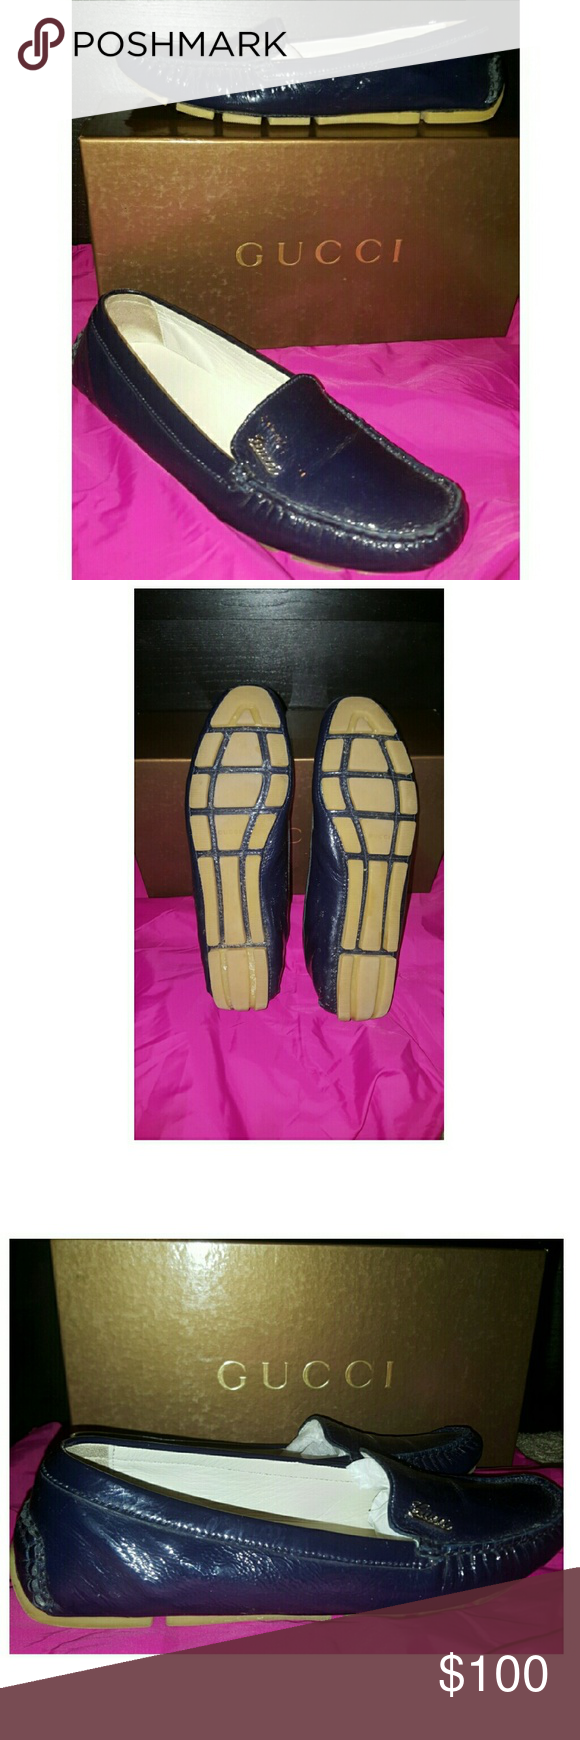 100% Authentic Used Gucci Loafers These Gucci loafers are authentic, used, navy blue patent leather and extremely BEAUTIFUL! They come with original box and are in very good condition. Please see all pics and ask any questions you'd like. All reasonable offers accepted!! Thank you! Gucci  Shoes Flats & Loafers